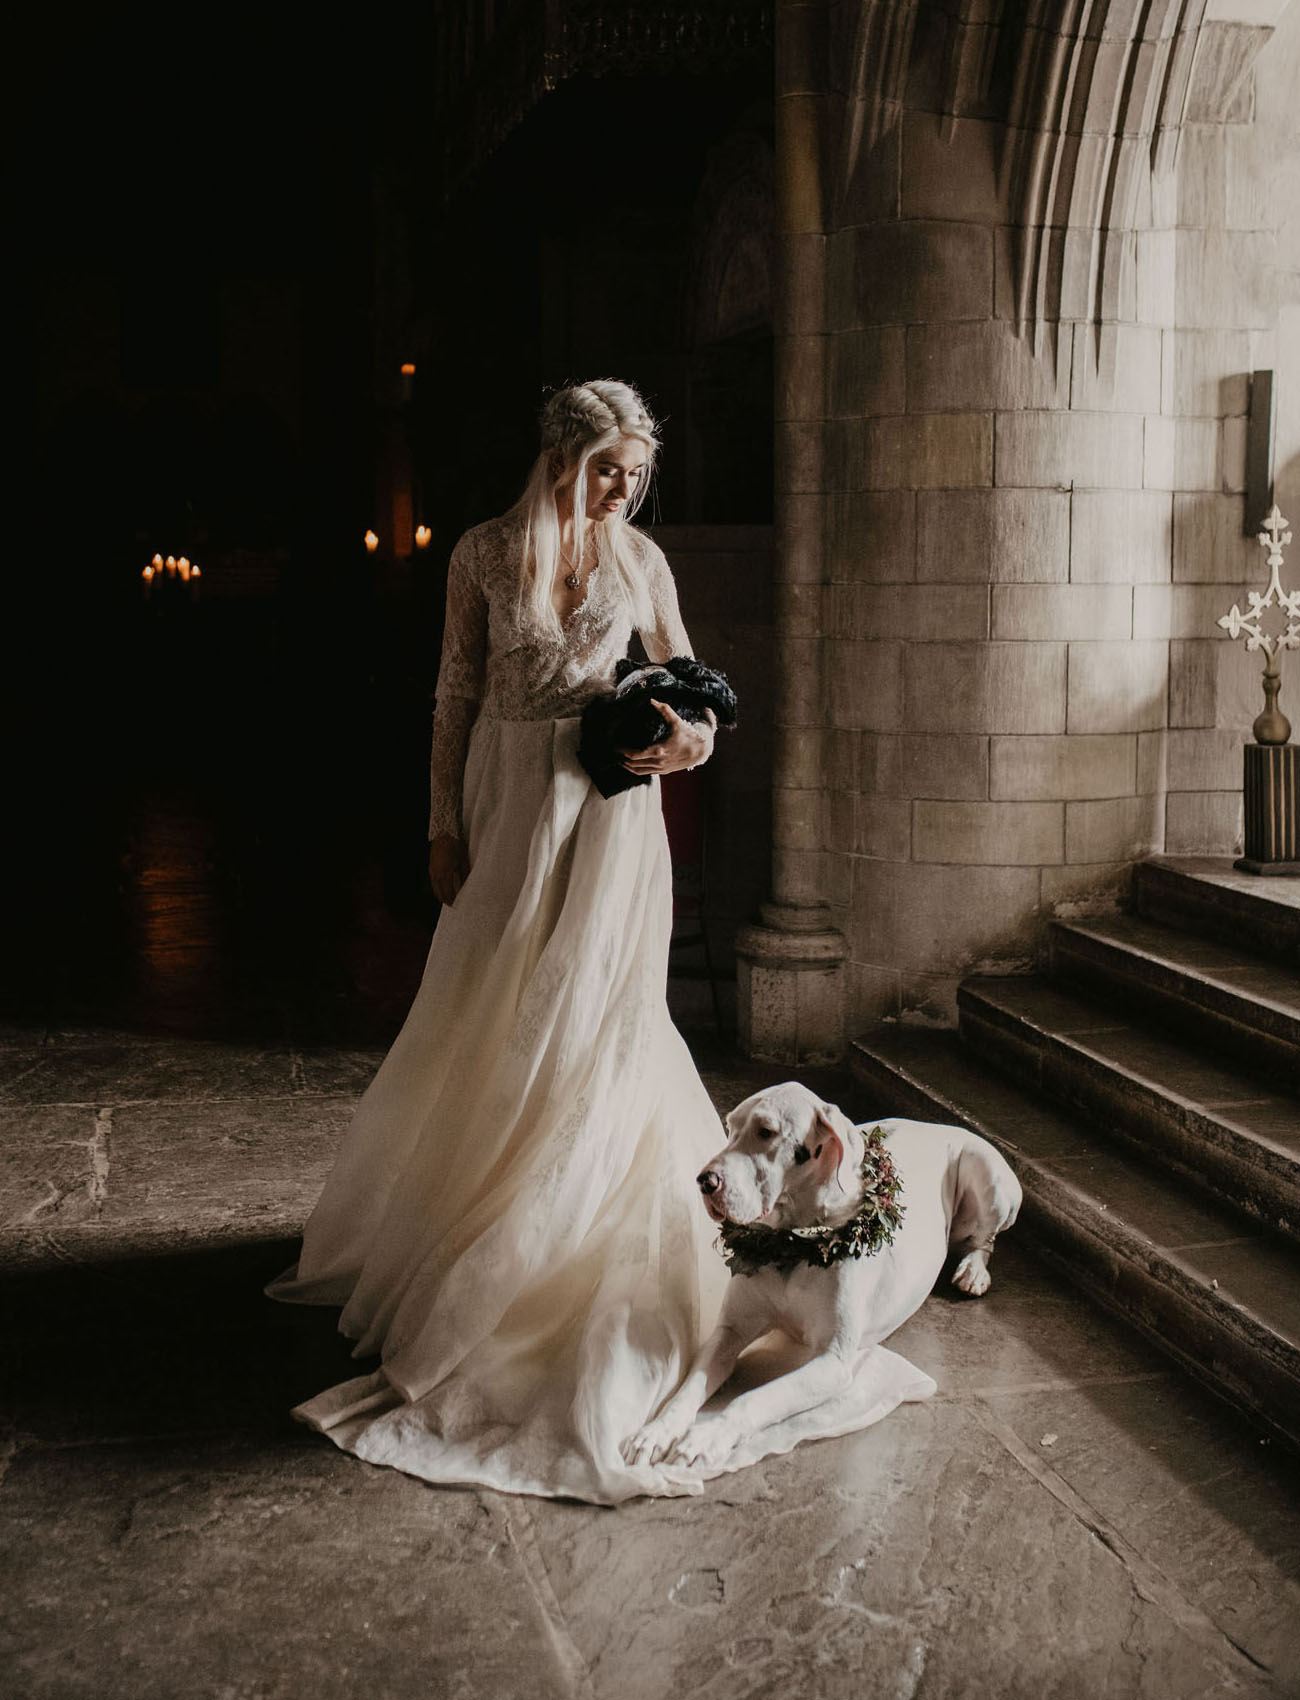 The bride with a dragon egg and a large dog by her instead of dragons